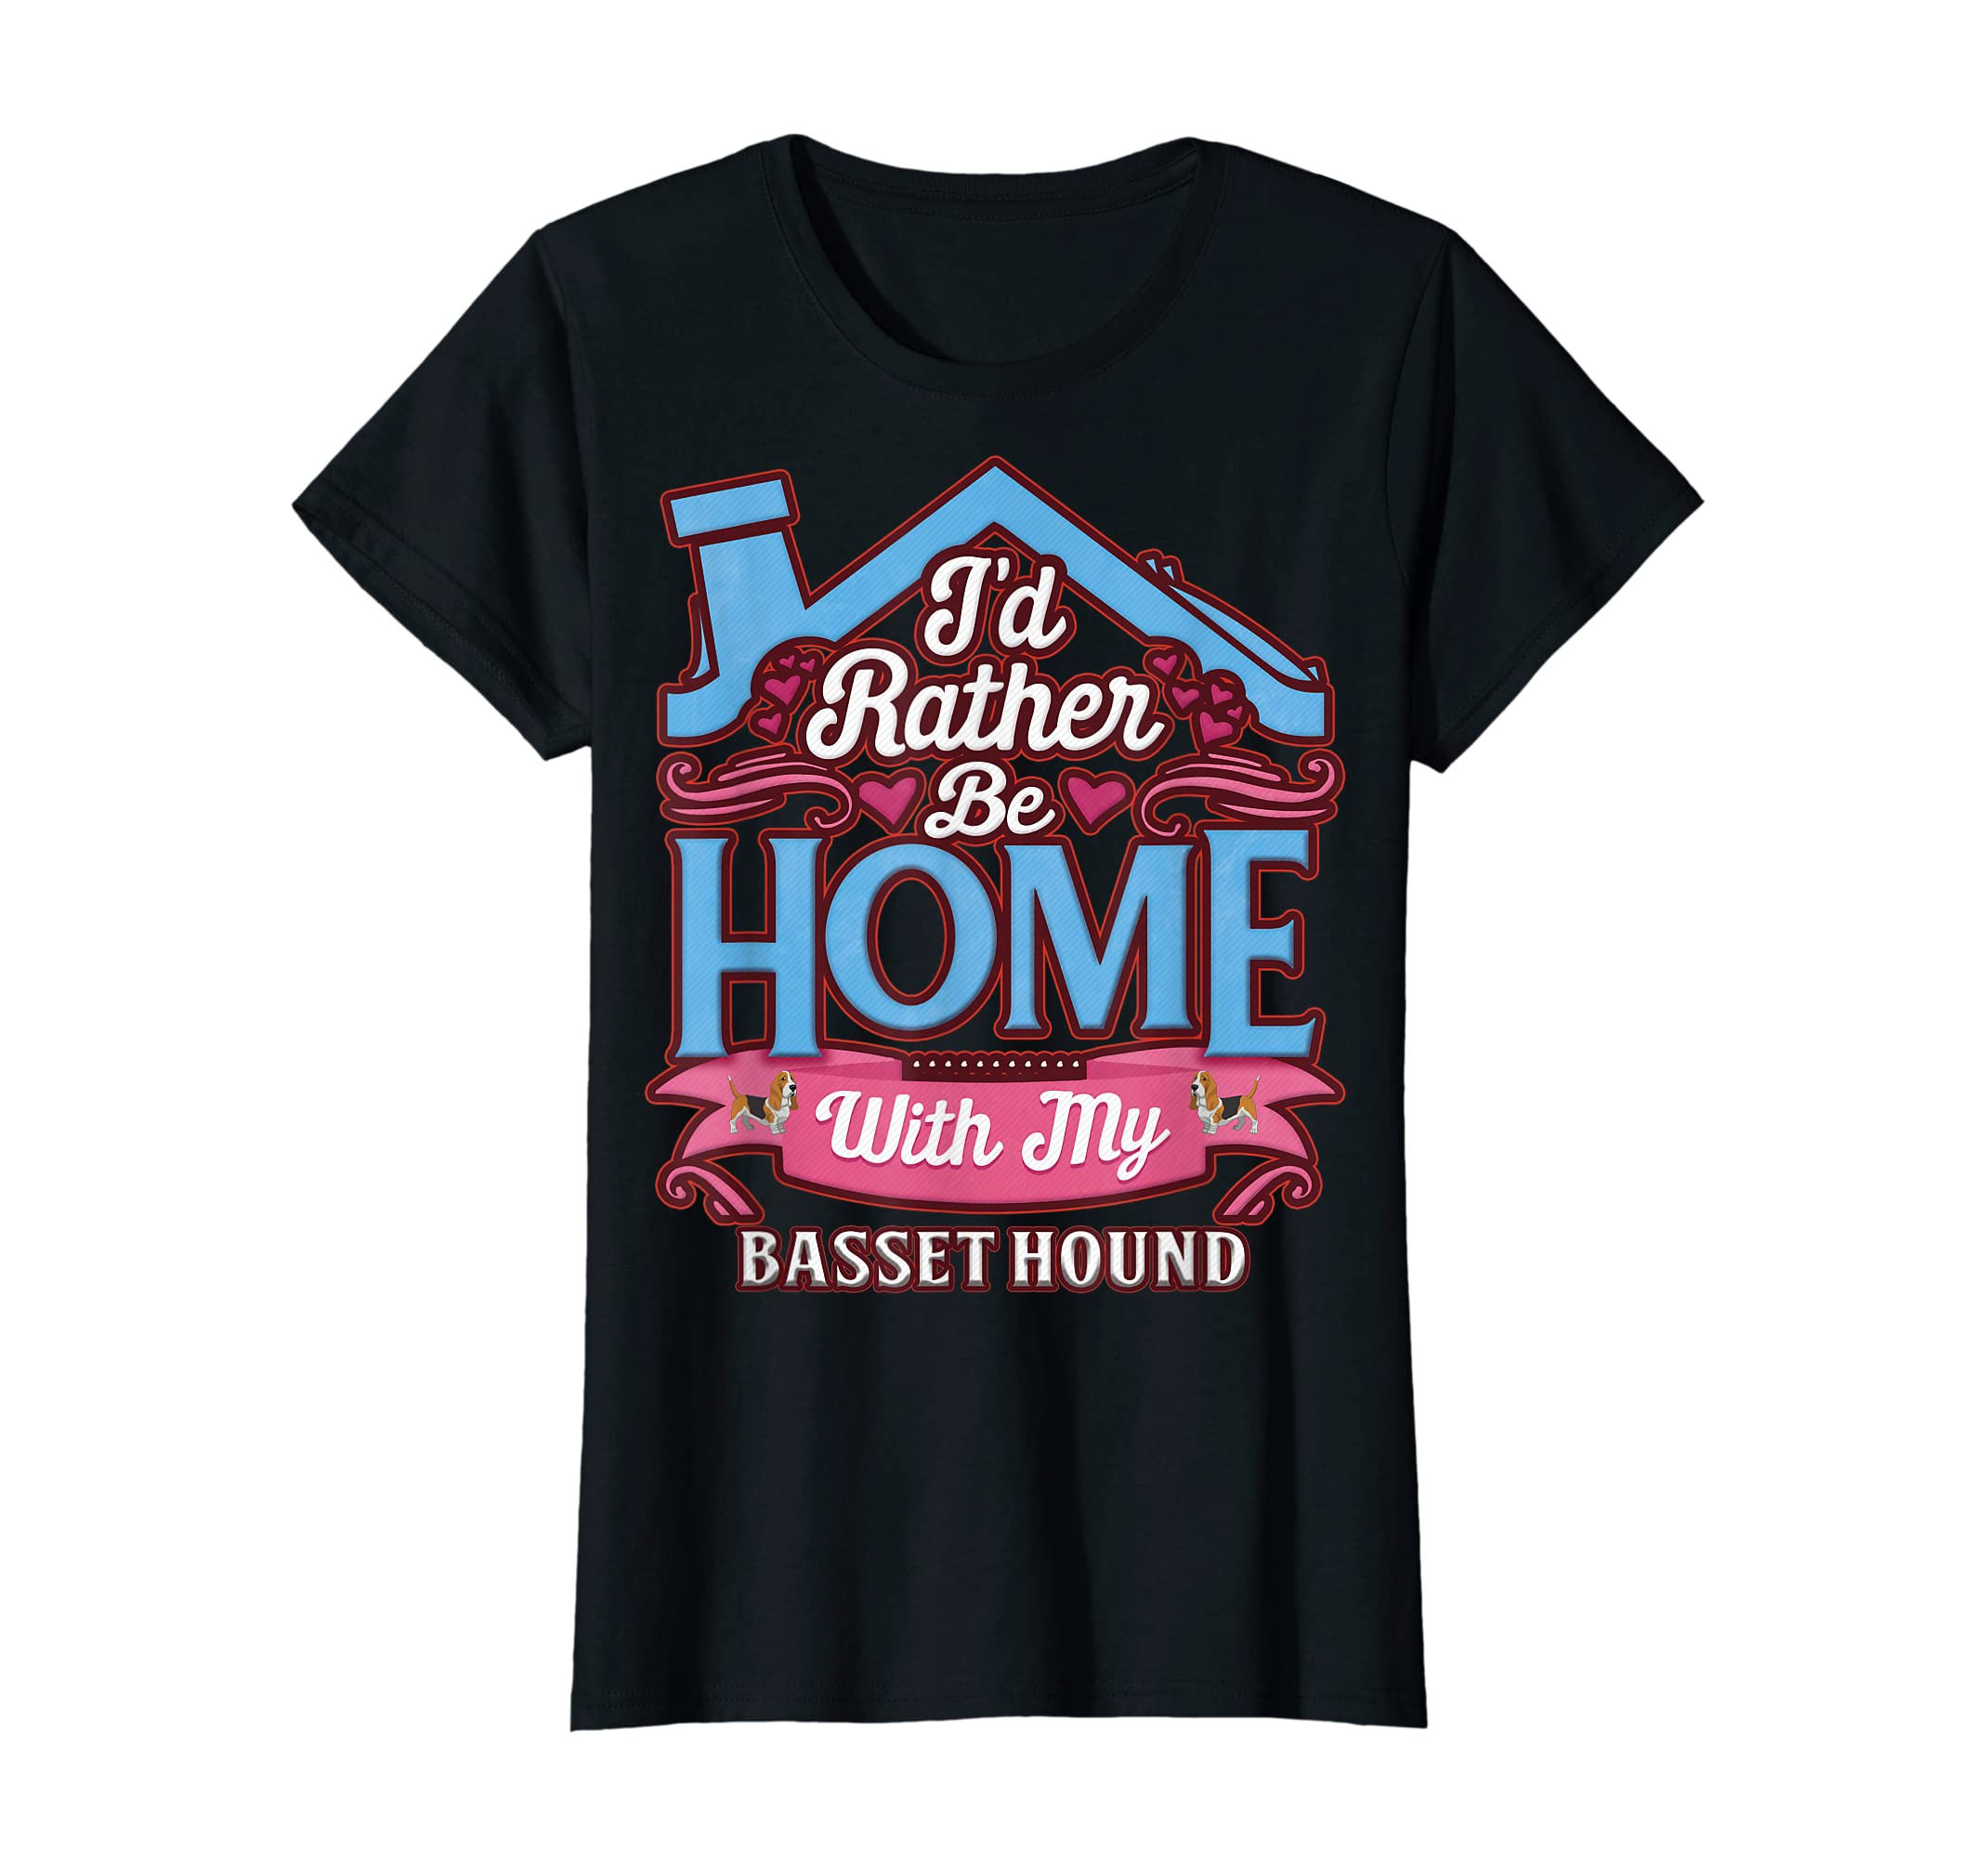 Basset Hound Home Dog T Shirt-Women's T-Shirt-Black